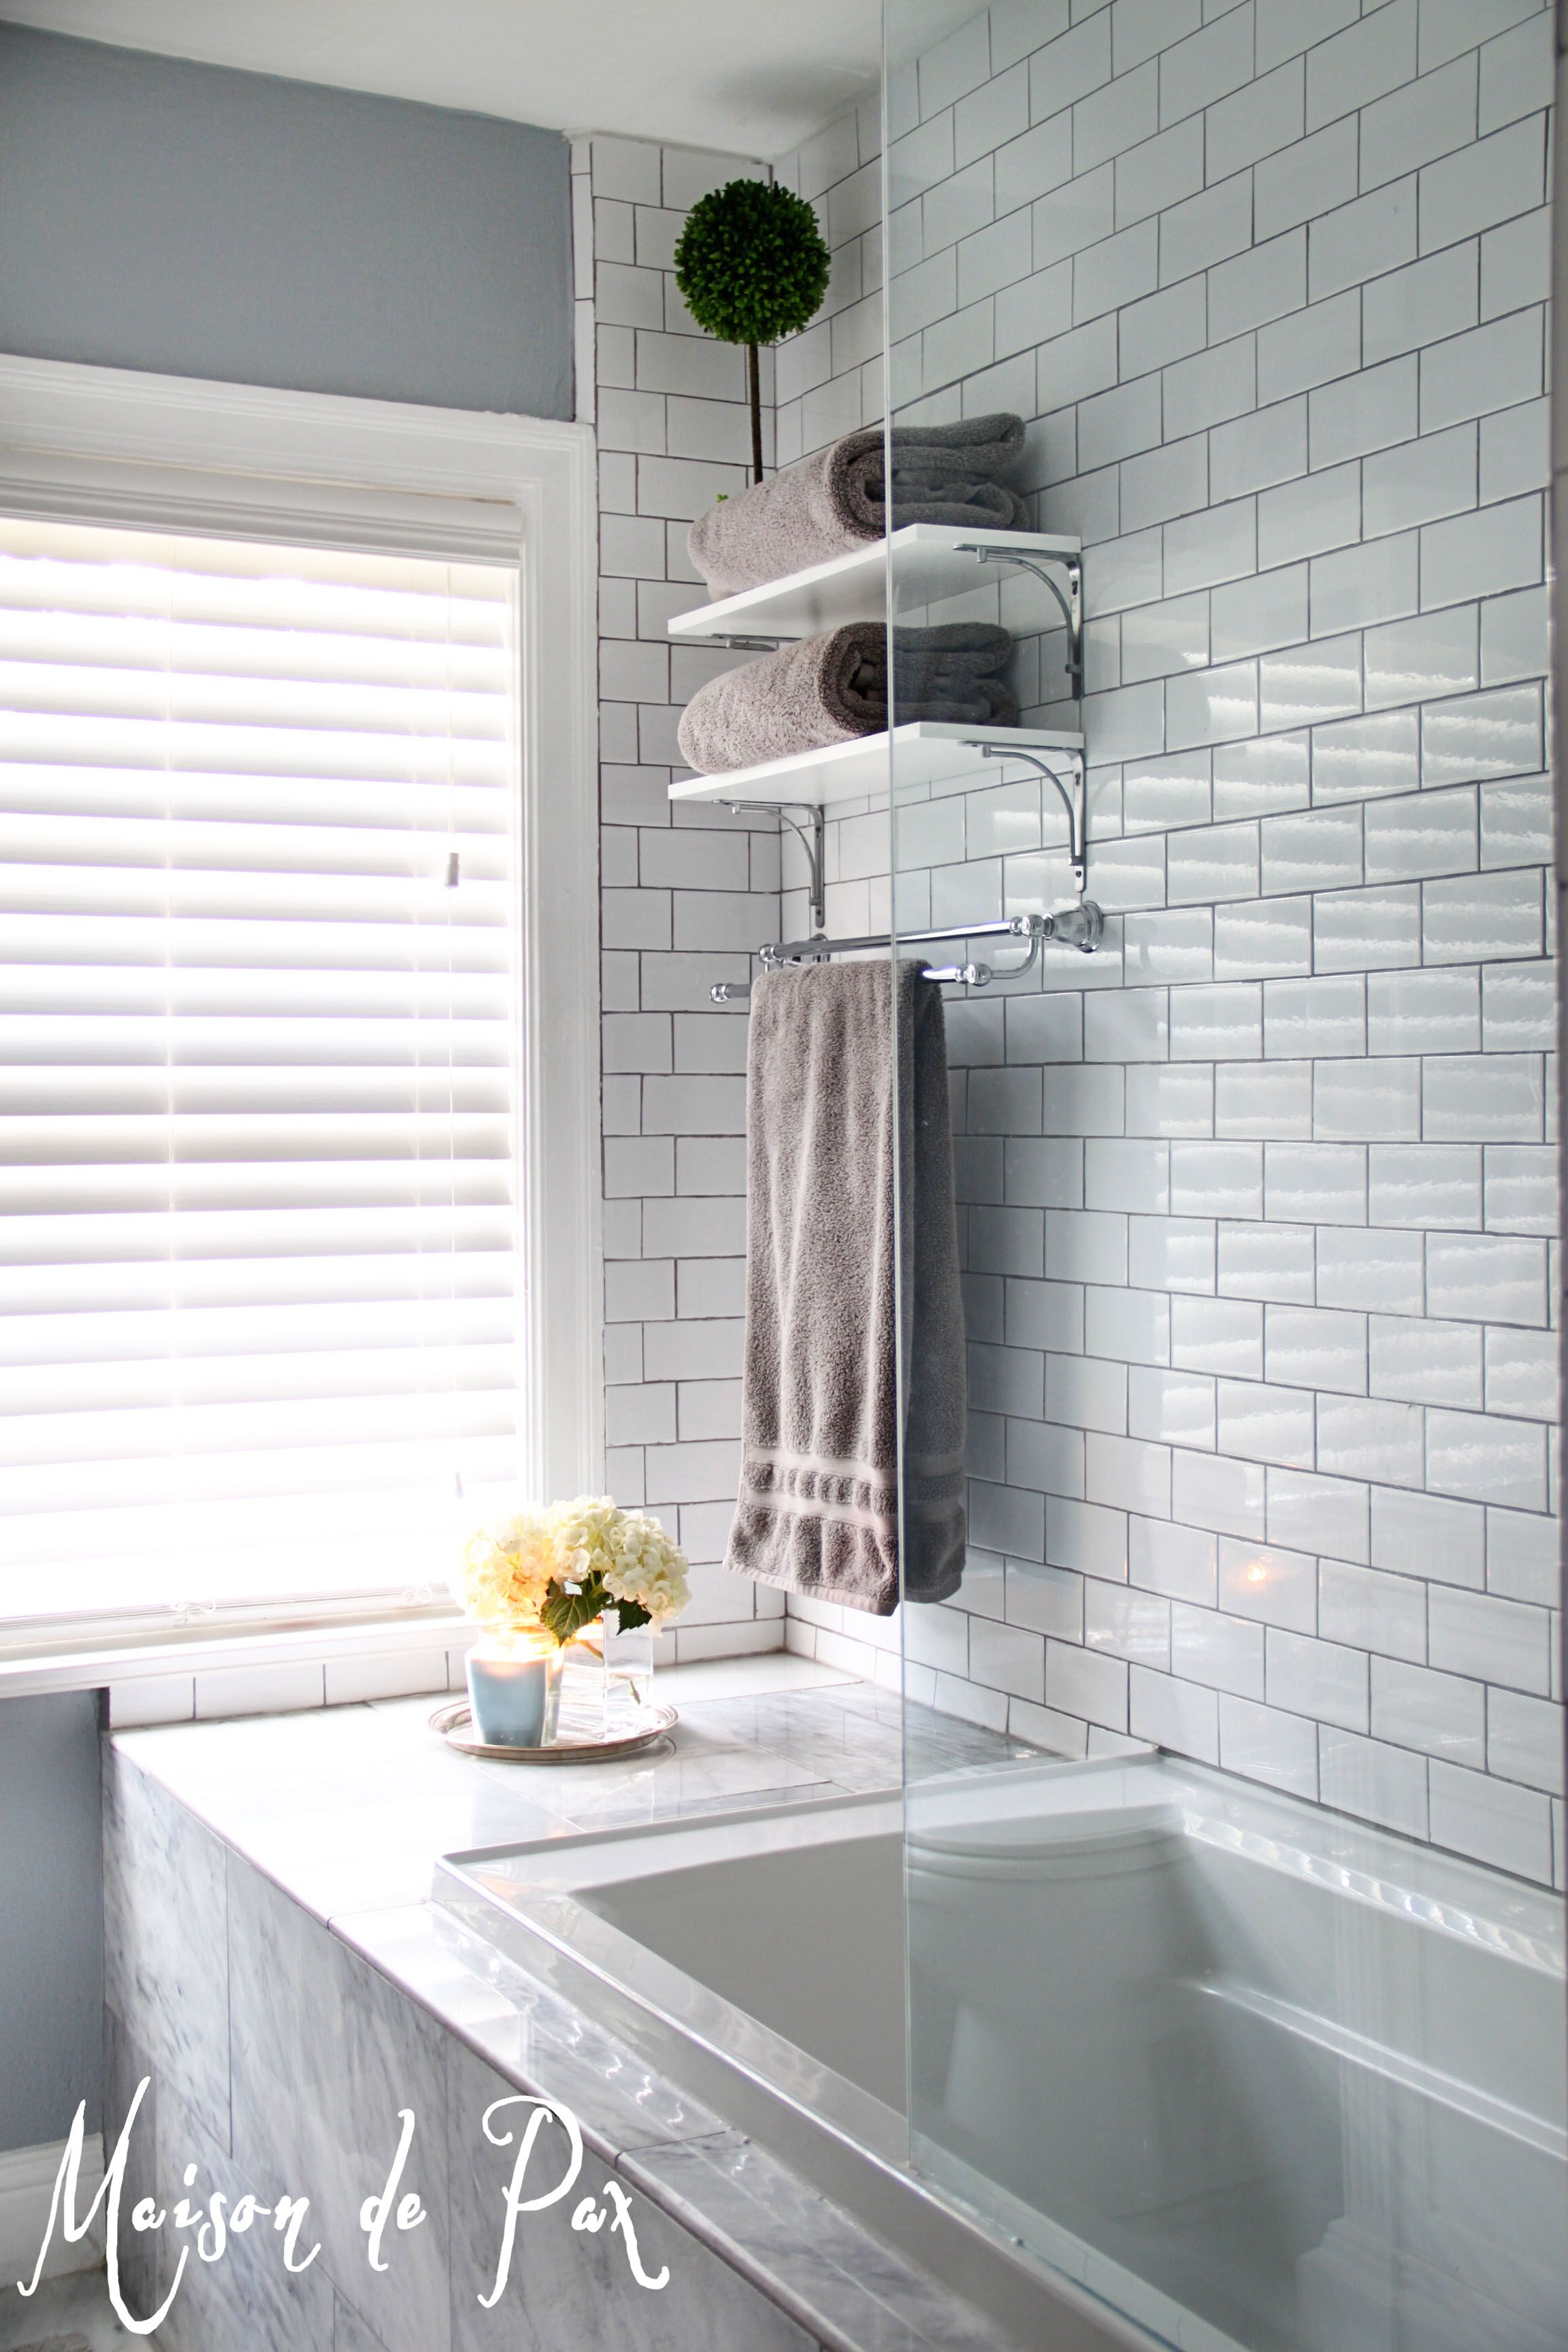 10 Tips For Designing A Small Bathroom Light Gray Walls Grey Grout And White Subway Tiles